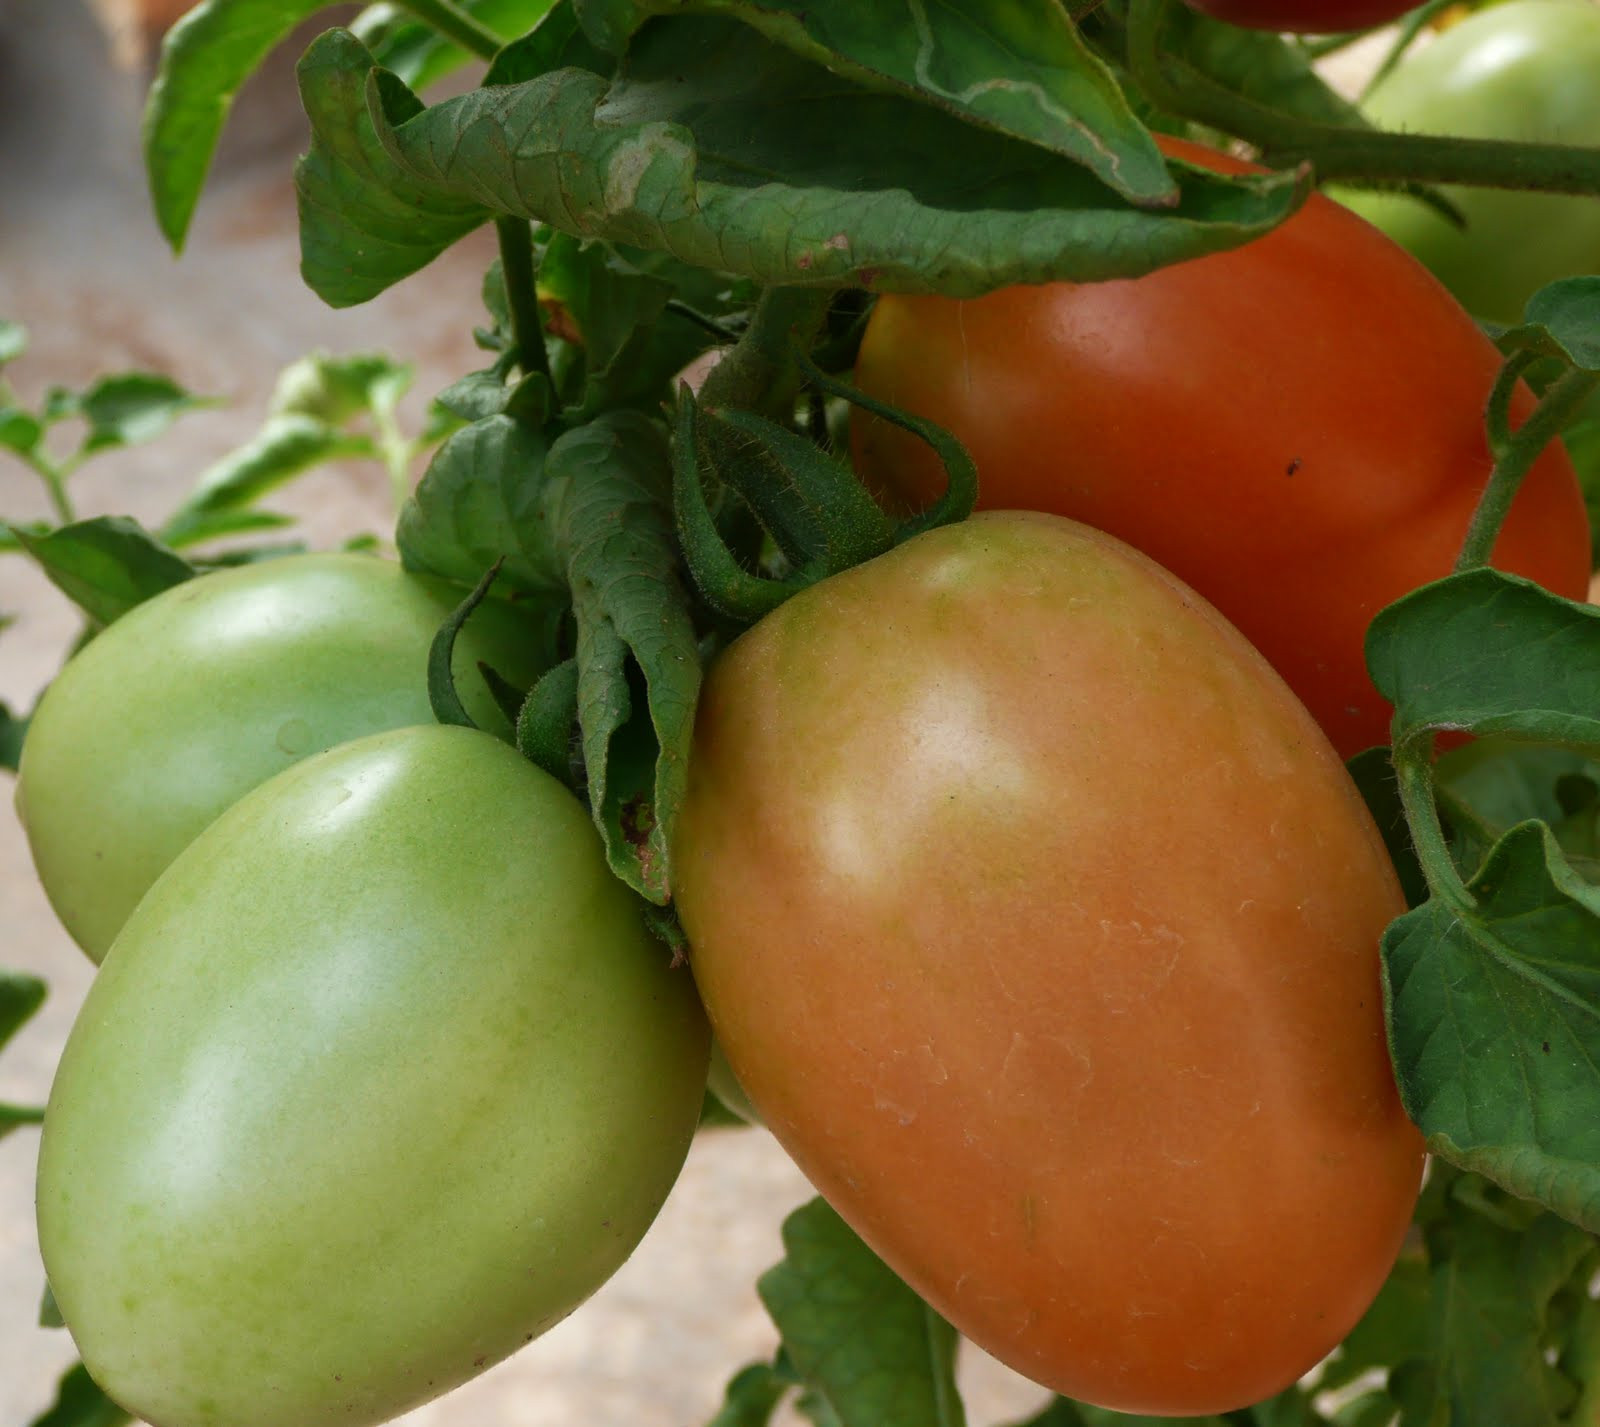 Tomato Vegetable Or Fruit  Organic Gardening Is tomato a fruit or a ve able